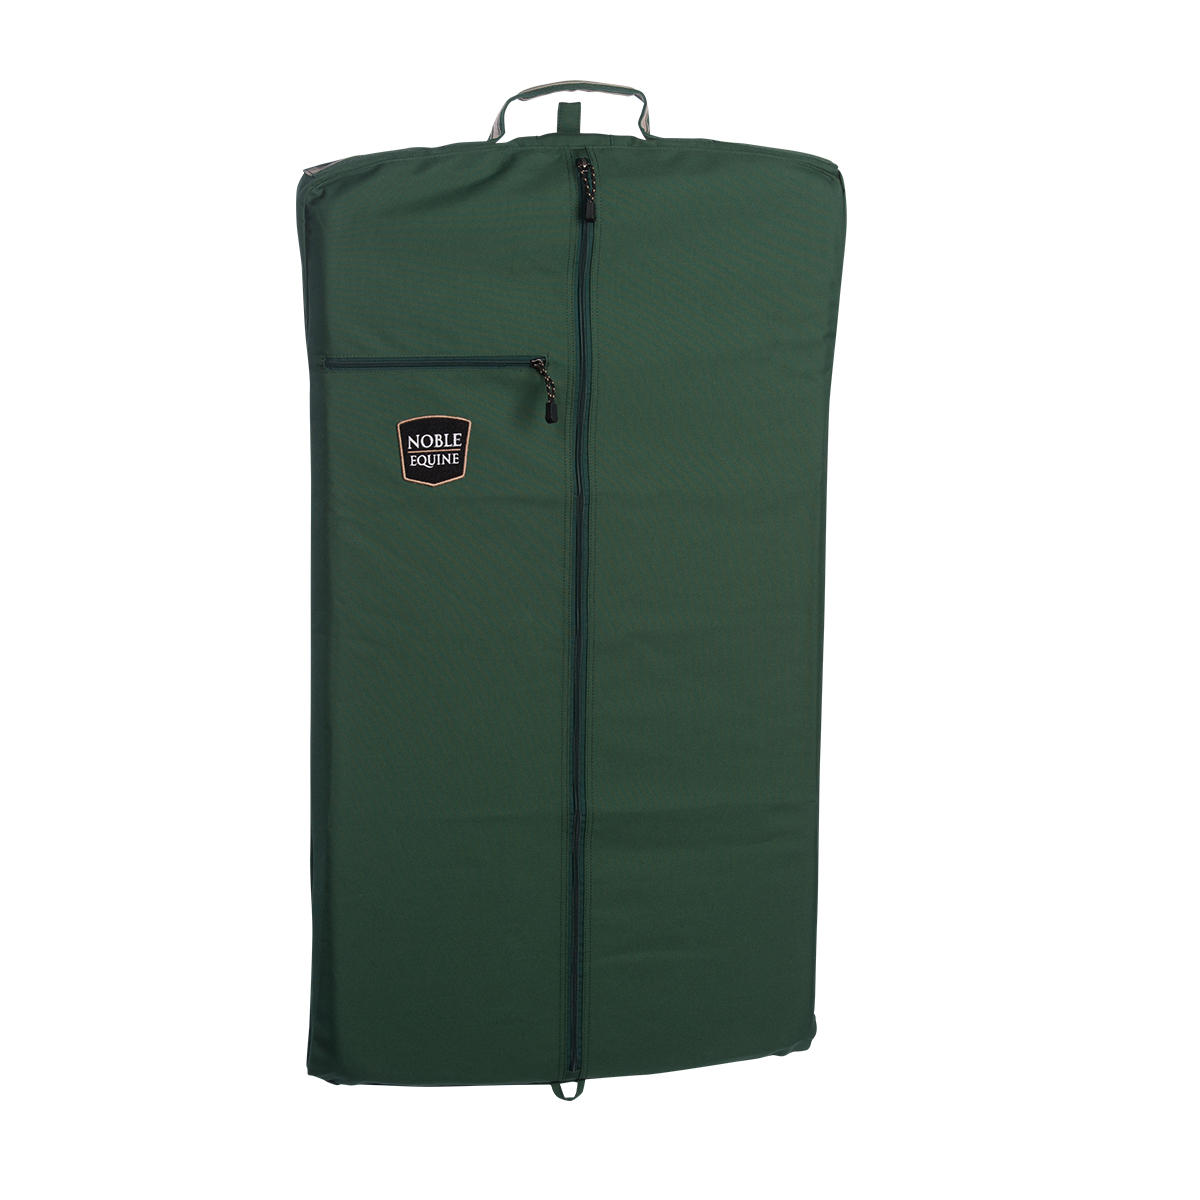 Noble Equine Show Ready Garment Bag